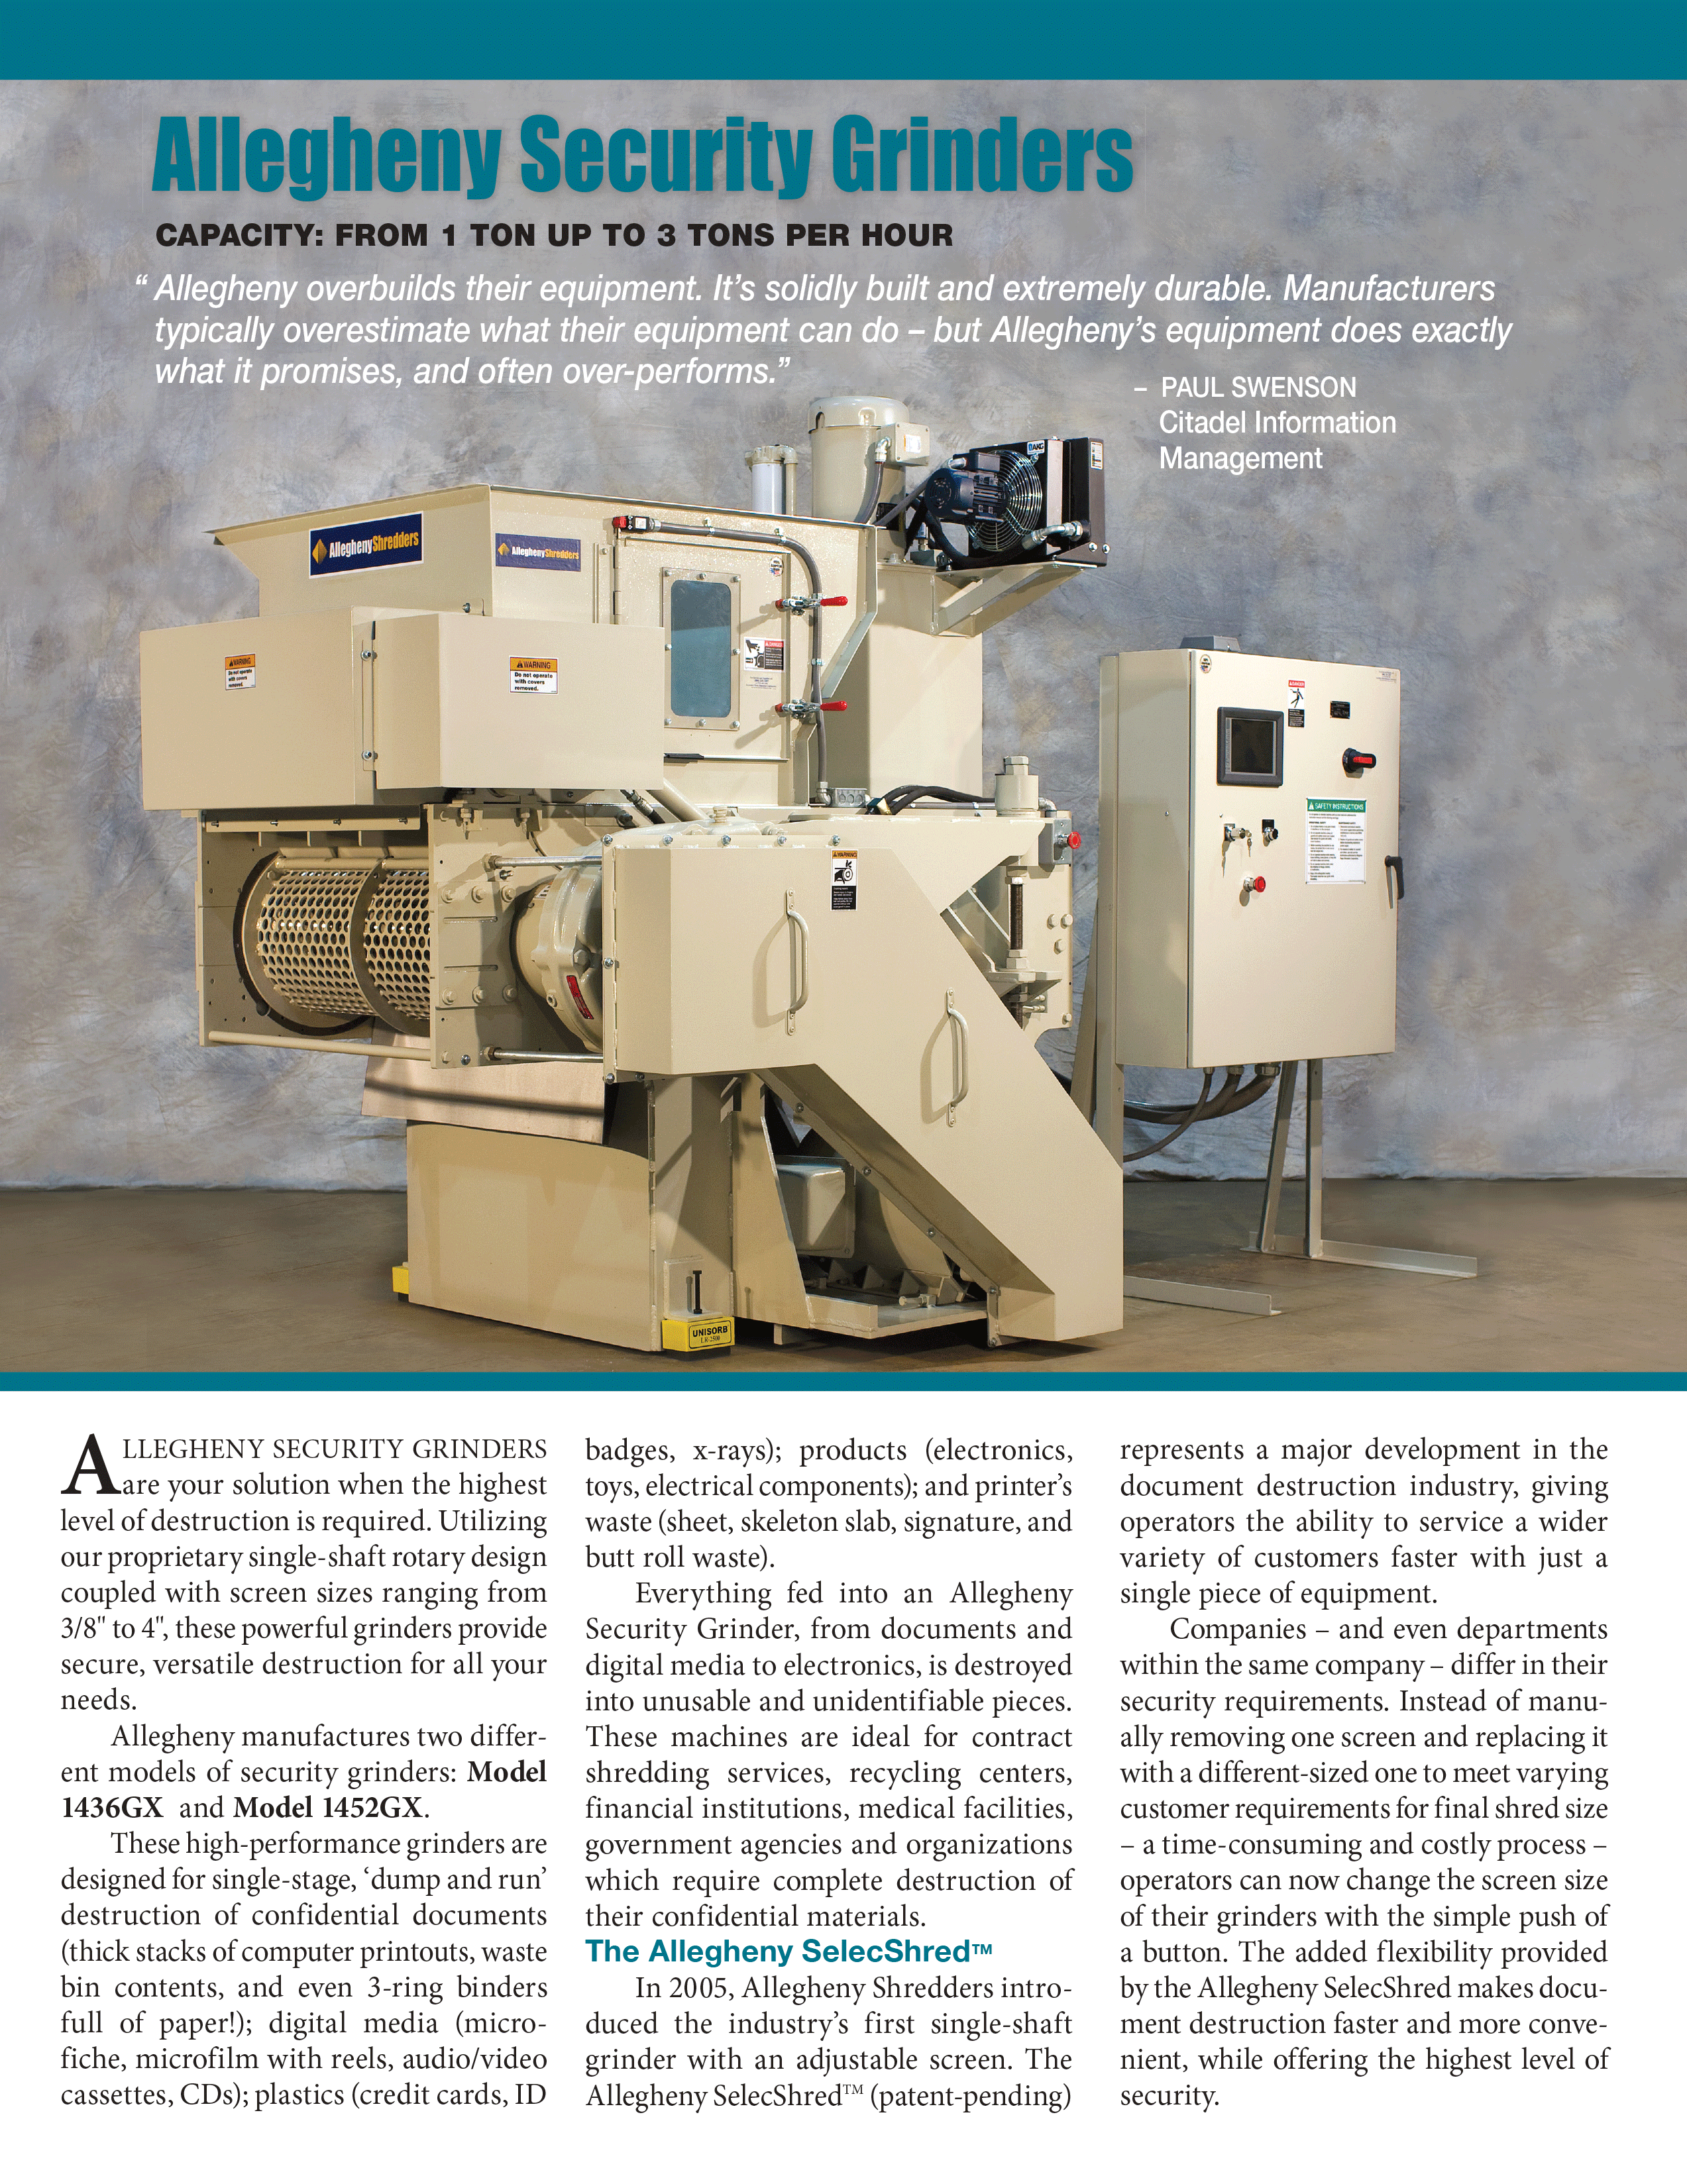 Learn more about Security Grinders in the Allegheny Brochure